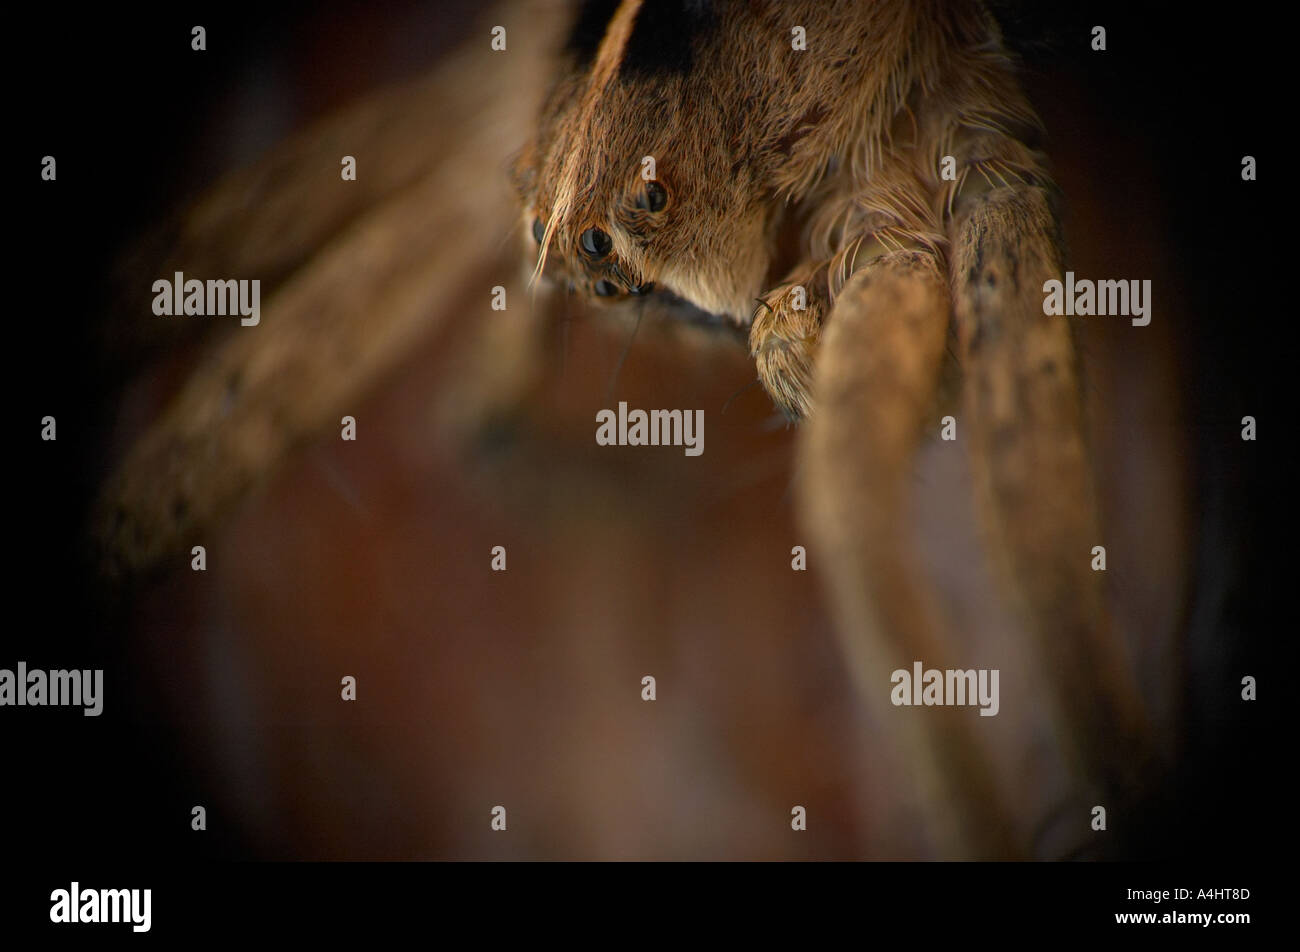 Extreme close up of a hunting wolf spider - Stock Image